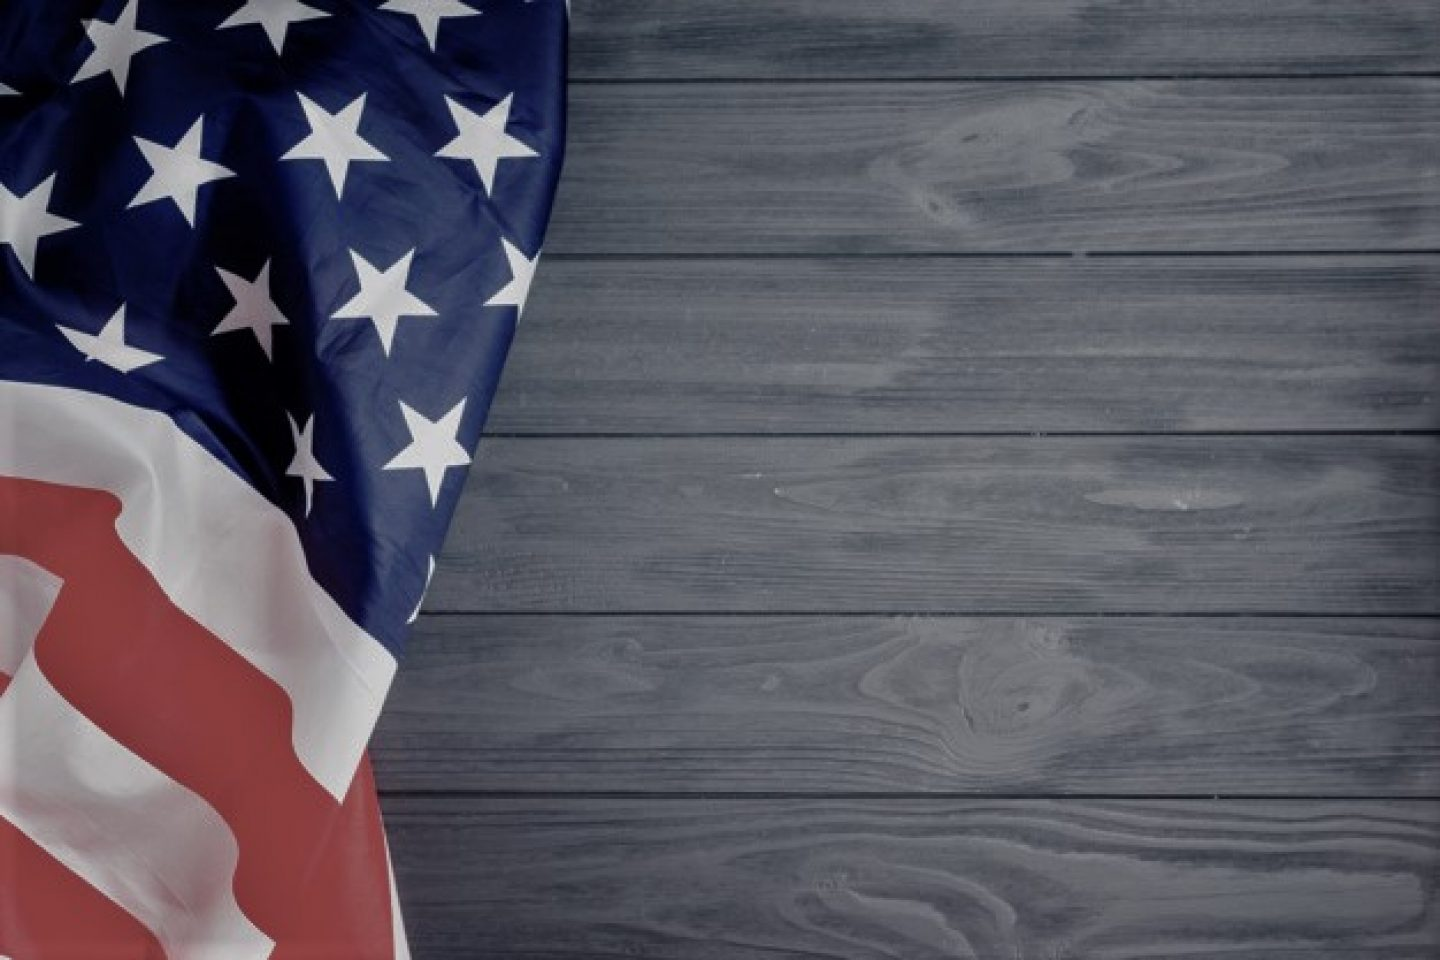 american-flag-background-with-copyspace-right_23-2147824271